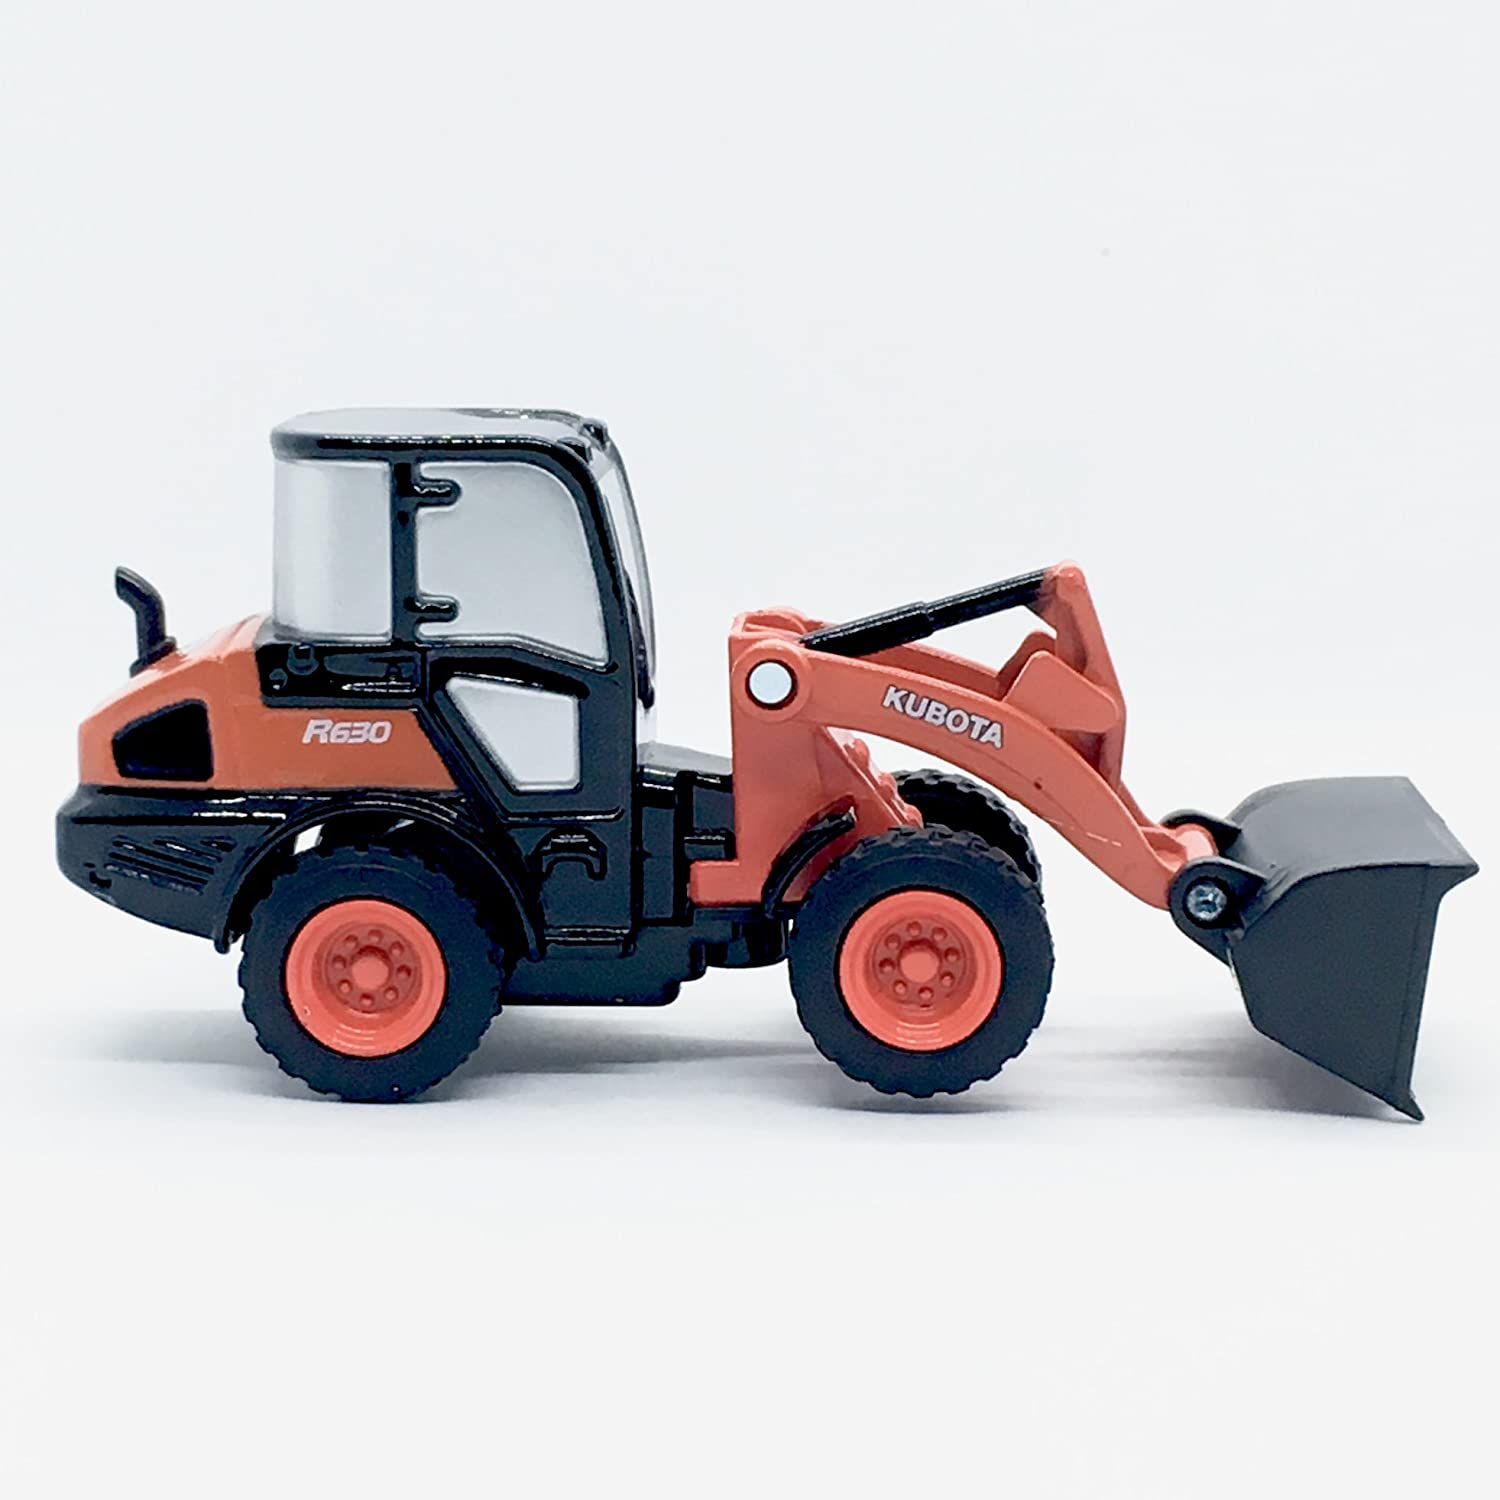 Kubota R630 Wheel Loader 1:64 Scale Construction Vehicle with Pull Back Motor Action from NewRay